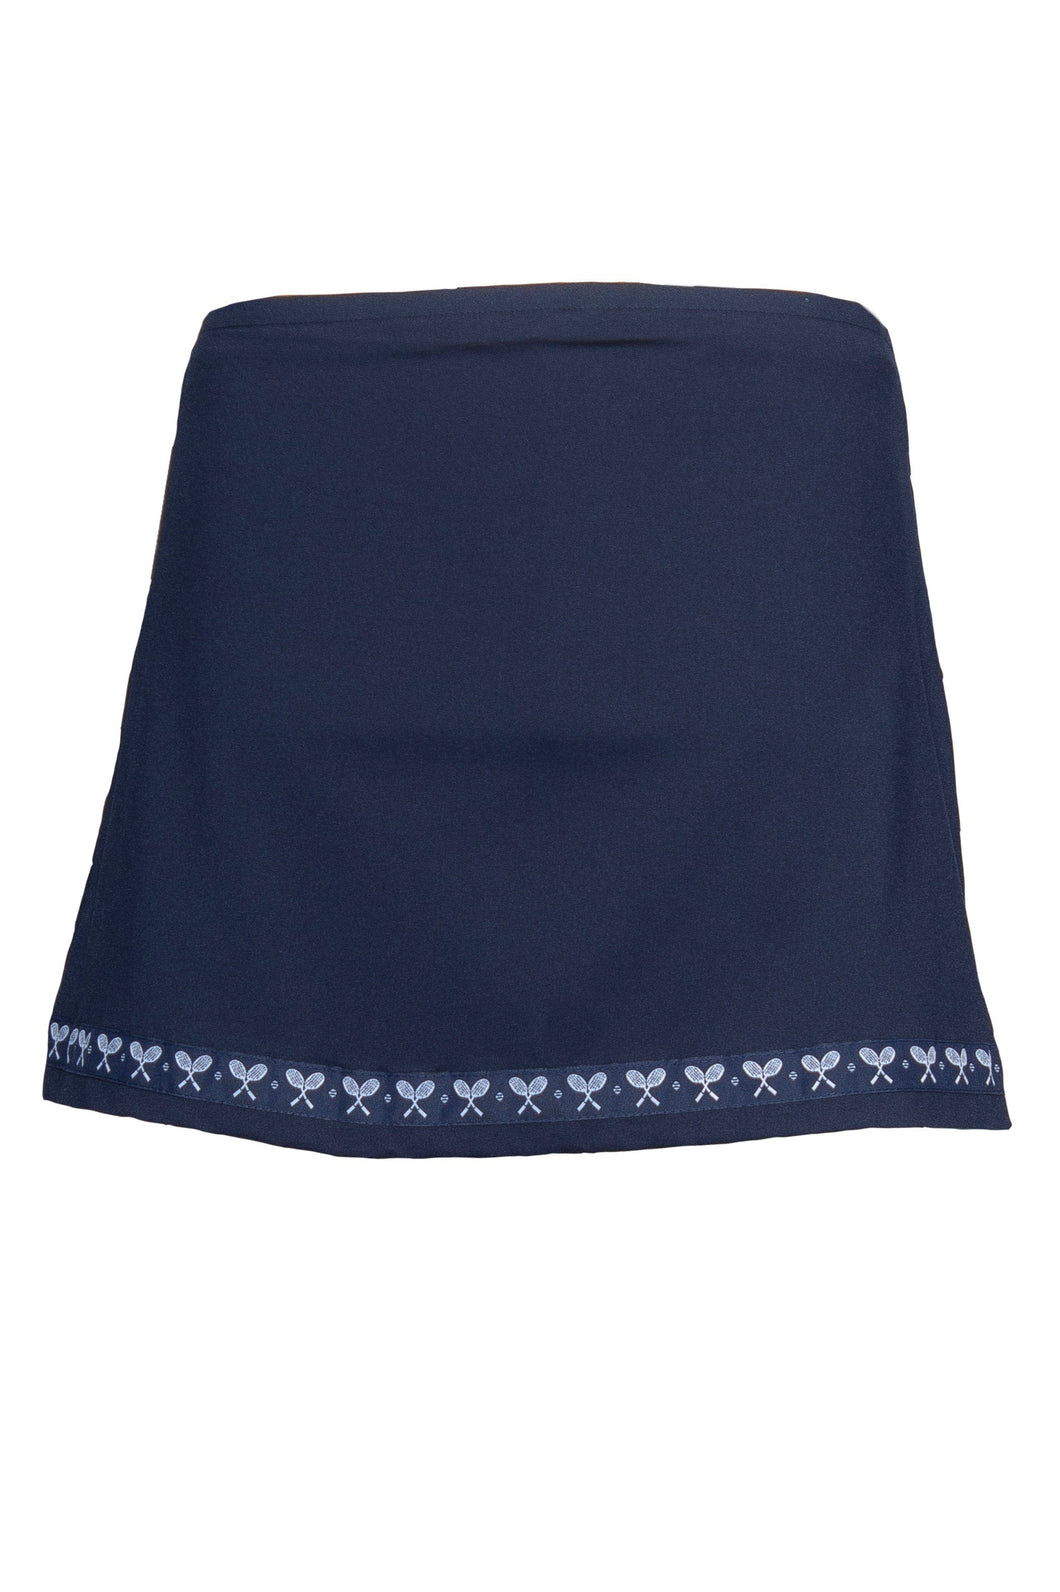 Navy Racket Club Tennis Skort